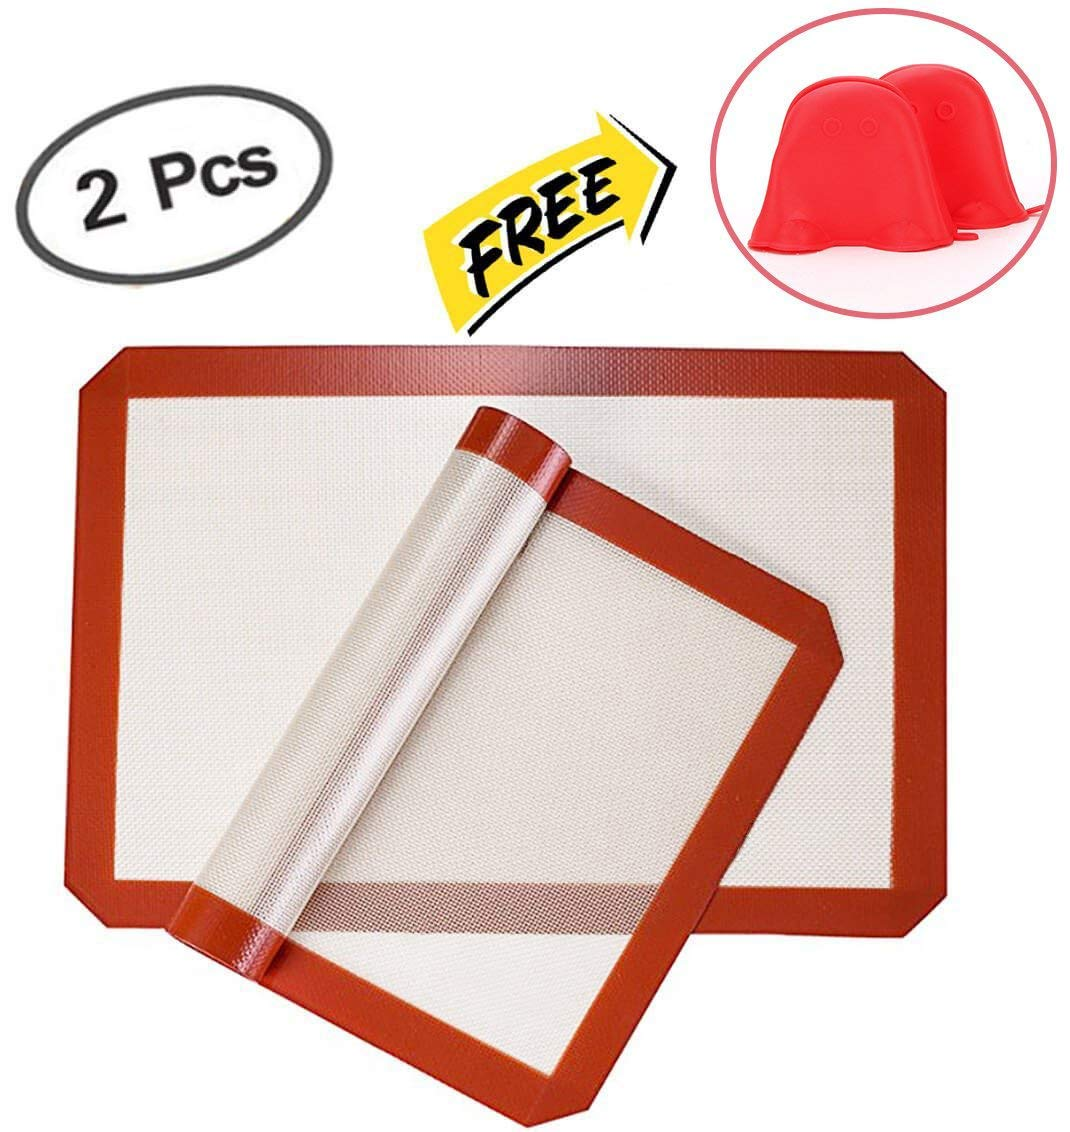 YORLFE Silicone Baking Mat - Set of 2 Half Sheet (Thick & Large 11 5/8'' x 16 1/2'') - Non Stick Silicon Liner for Bake Pans & Rolling - Macaron/Pastry/Cookie/Bread Making, Silicone Cooking Mitts